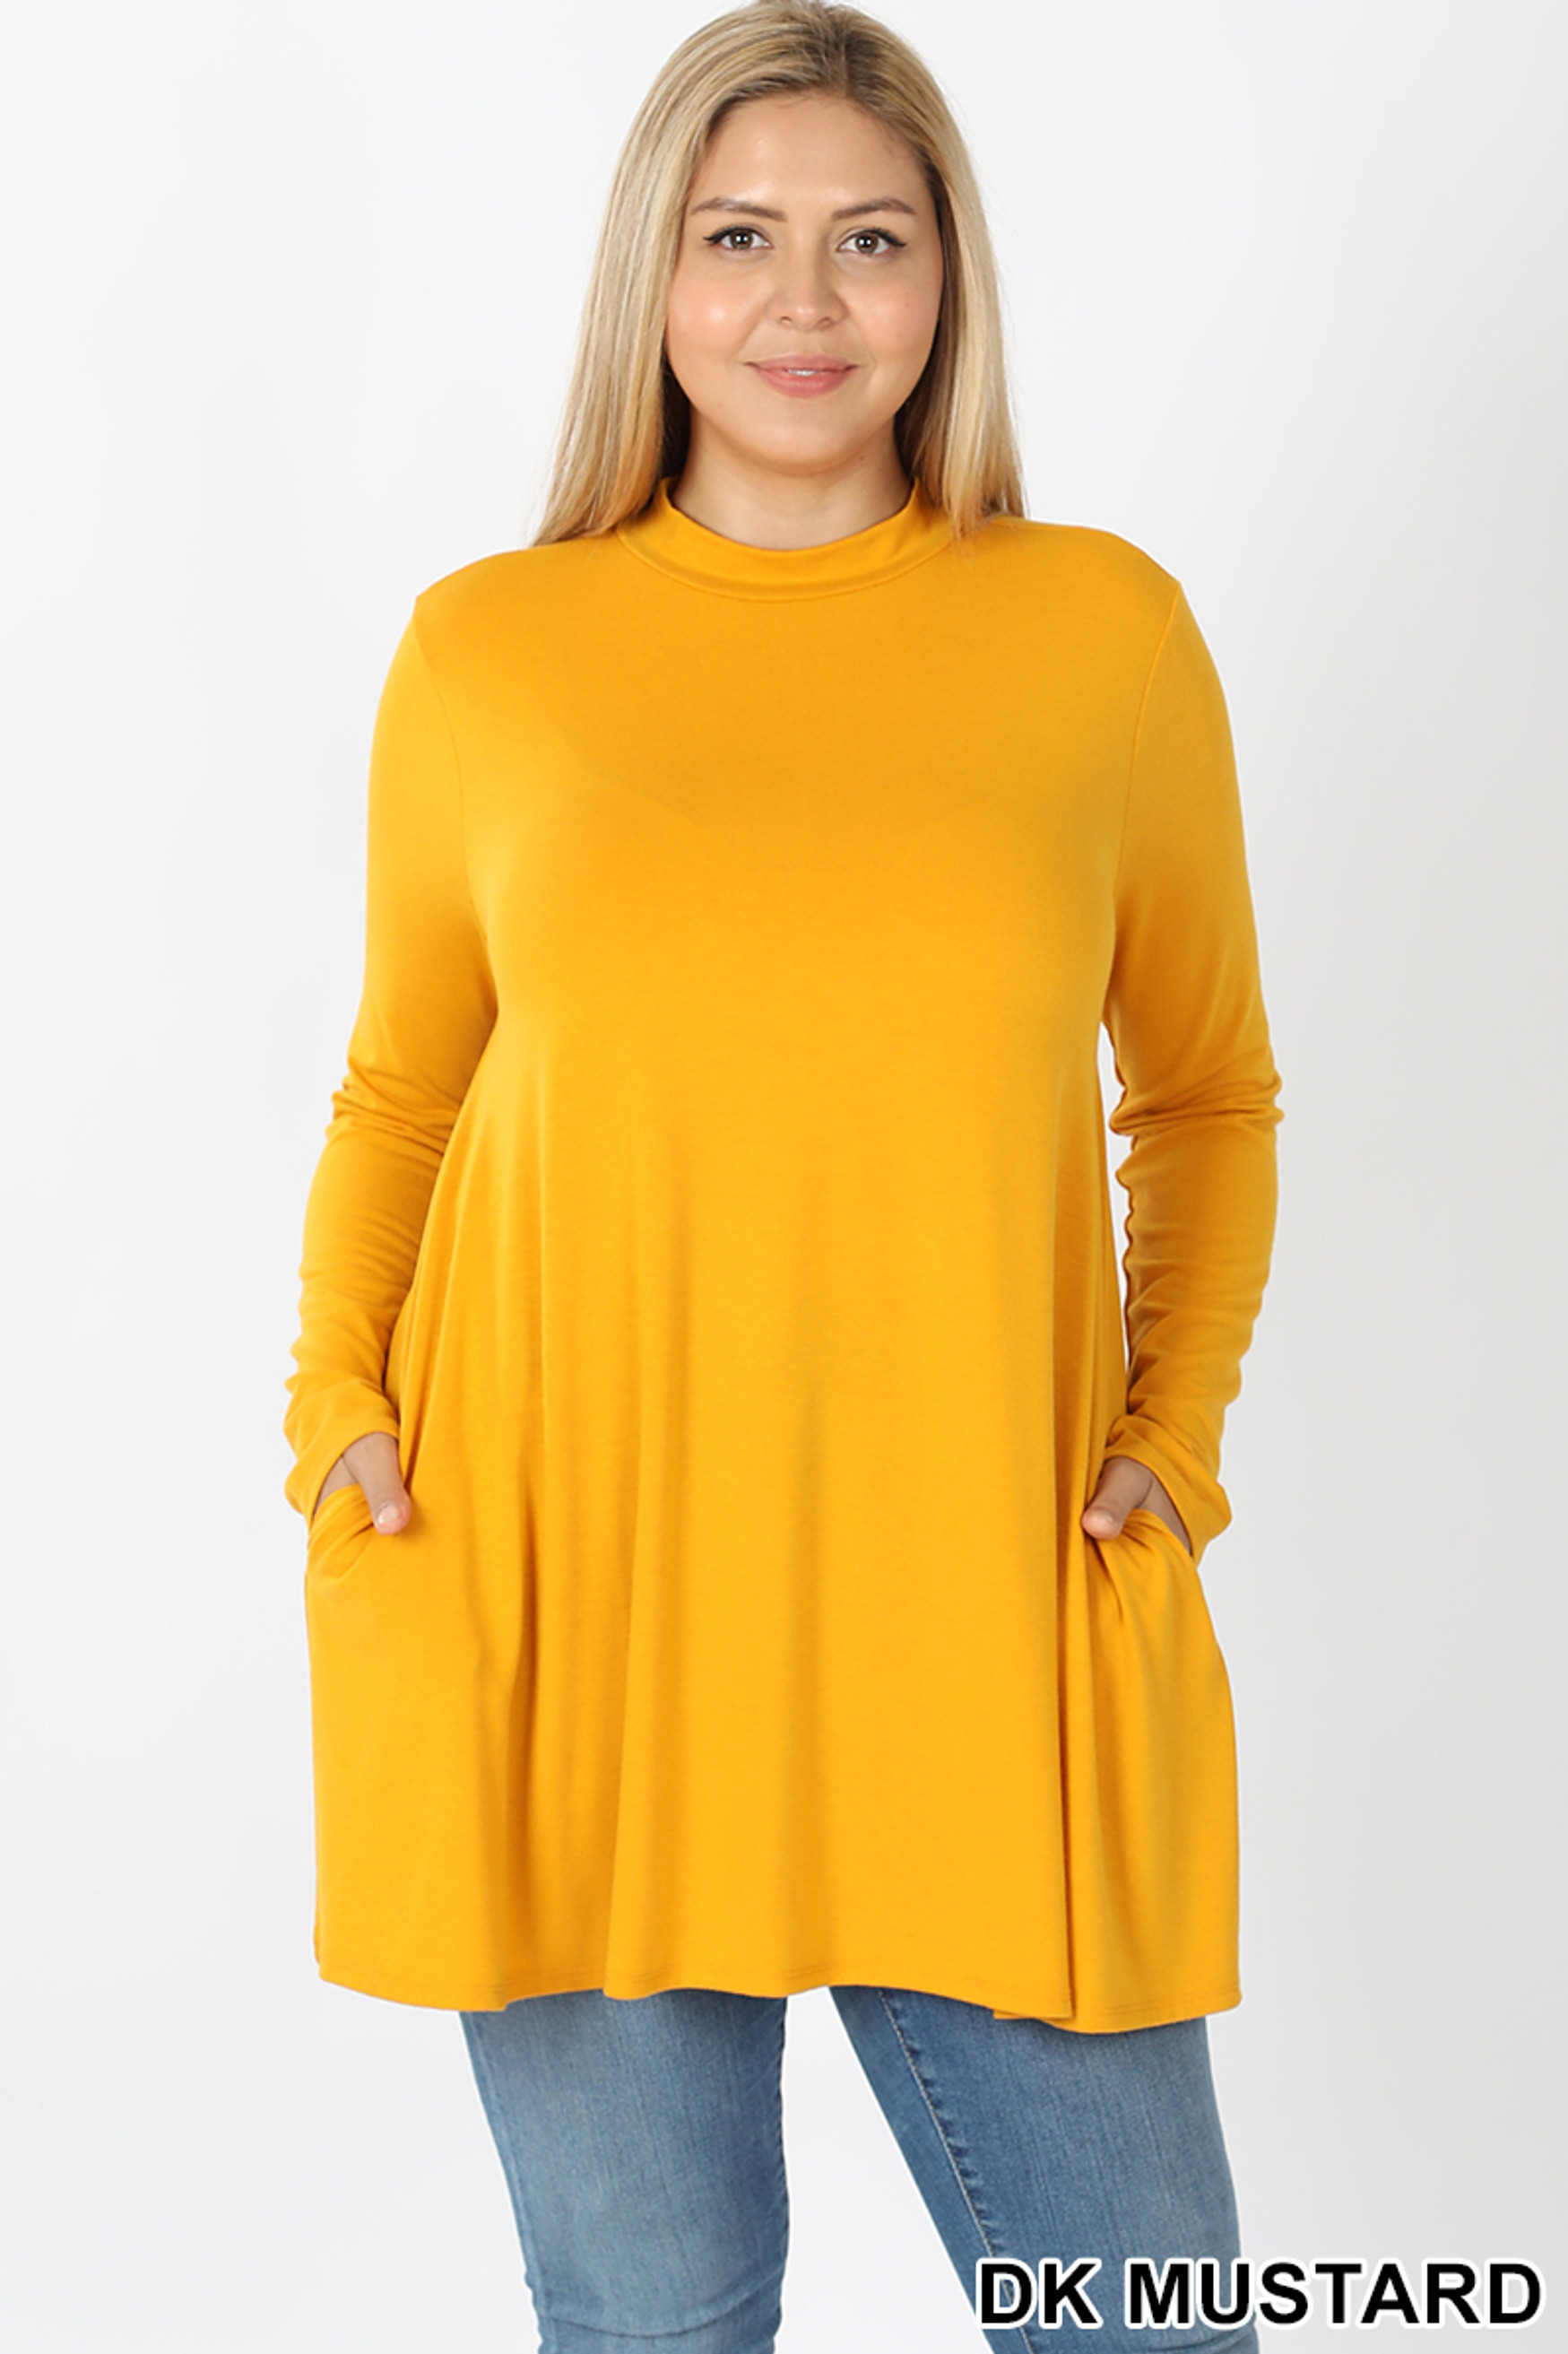 Front image of Dk Mustard Long Sleeve Mock Neck Plus Size Top